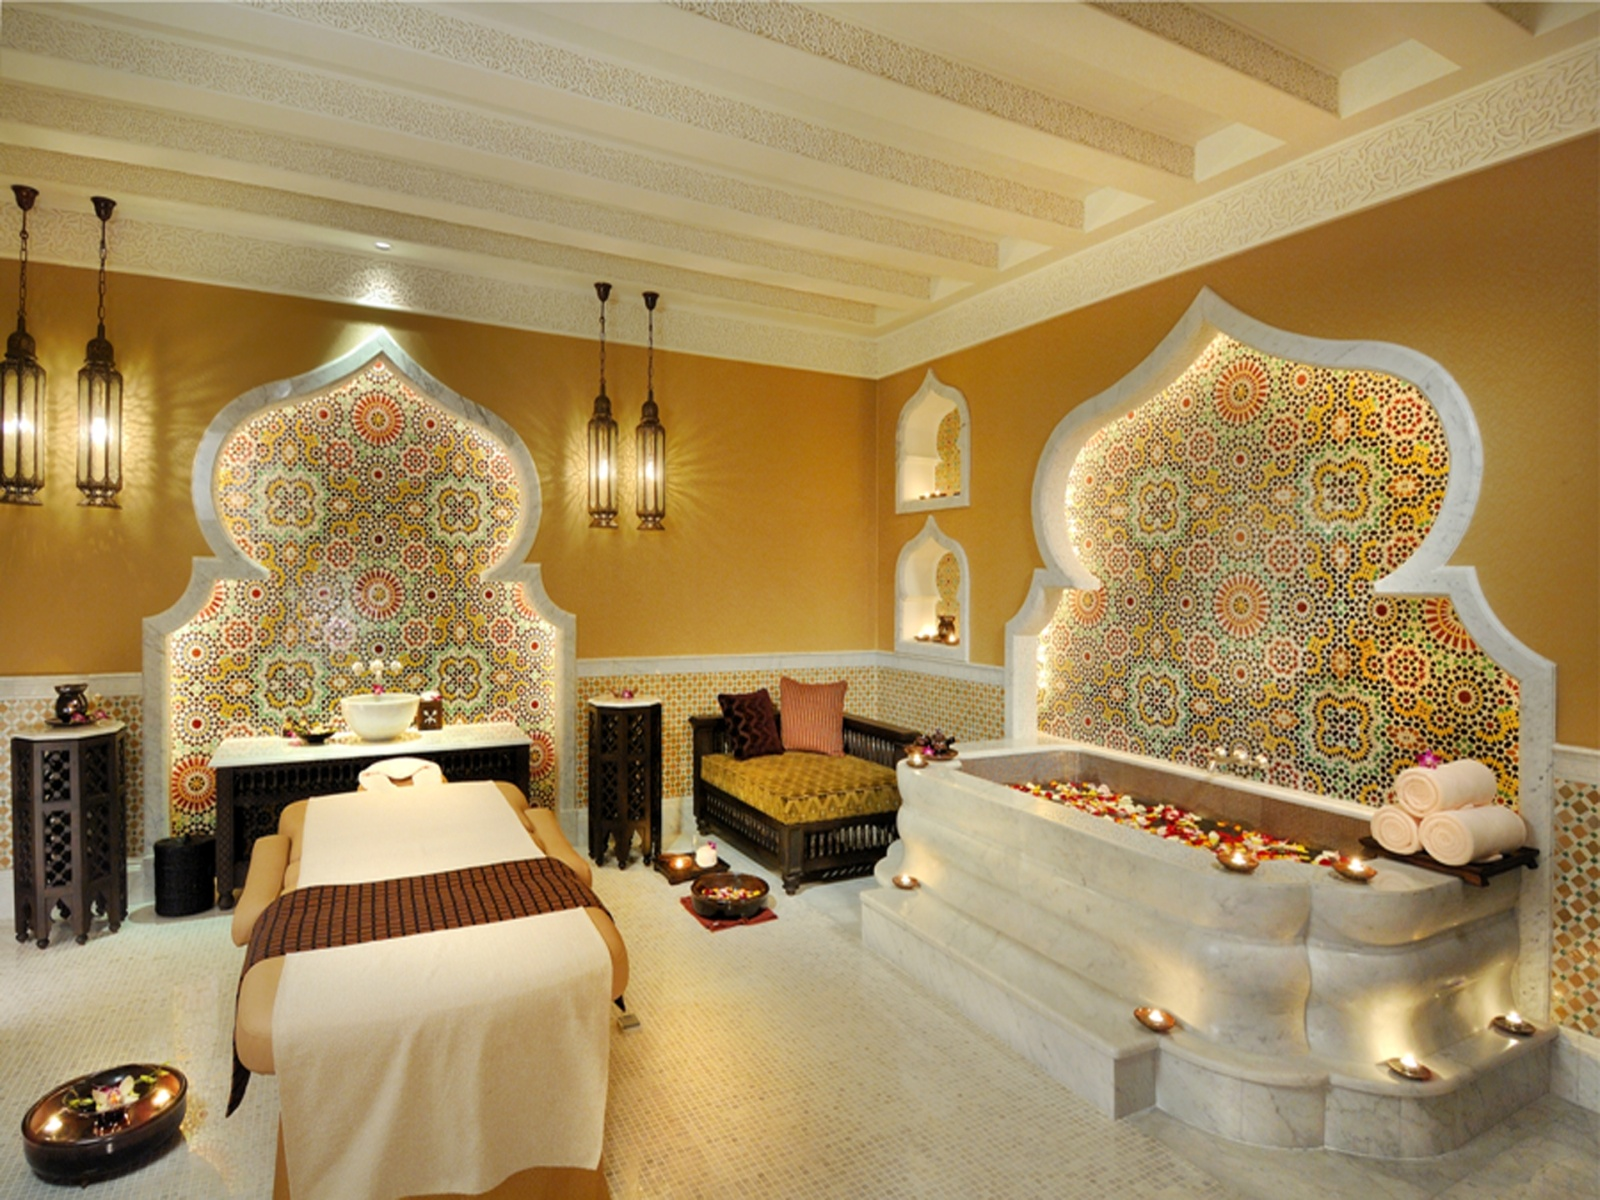 Most expensive hotel emirates palace abu dhabi bon vita for Most expensive hotel room in dubai